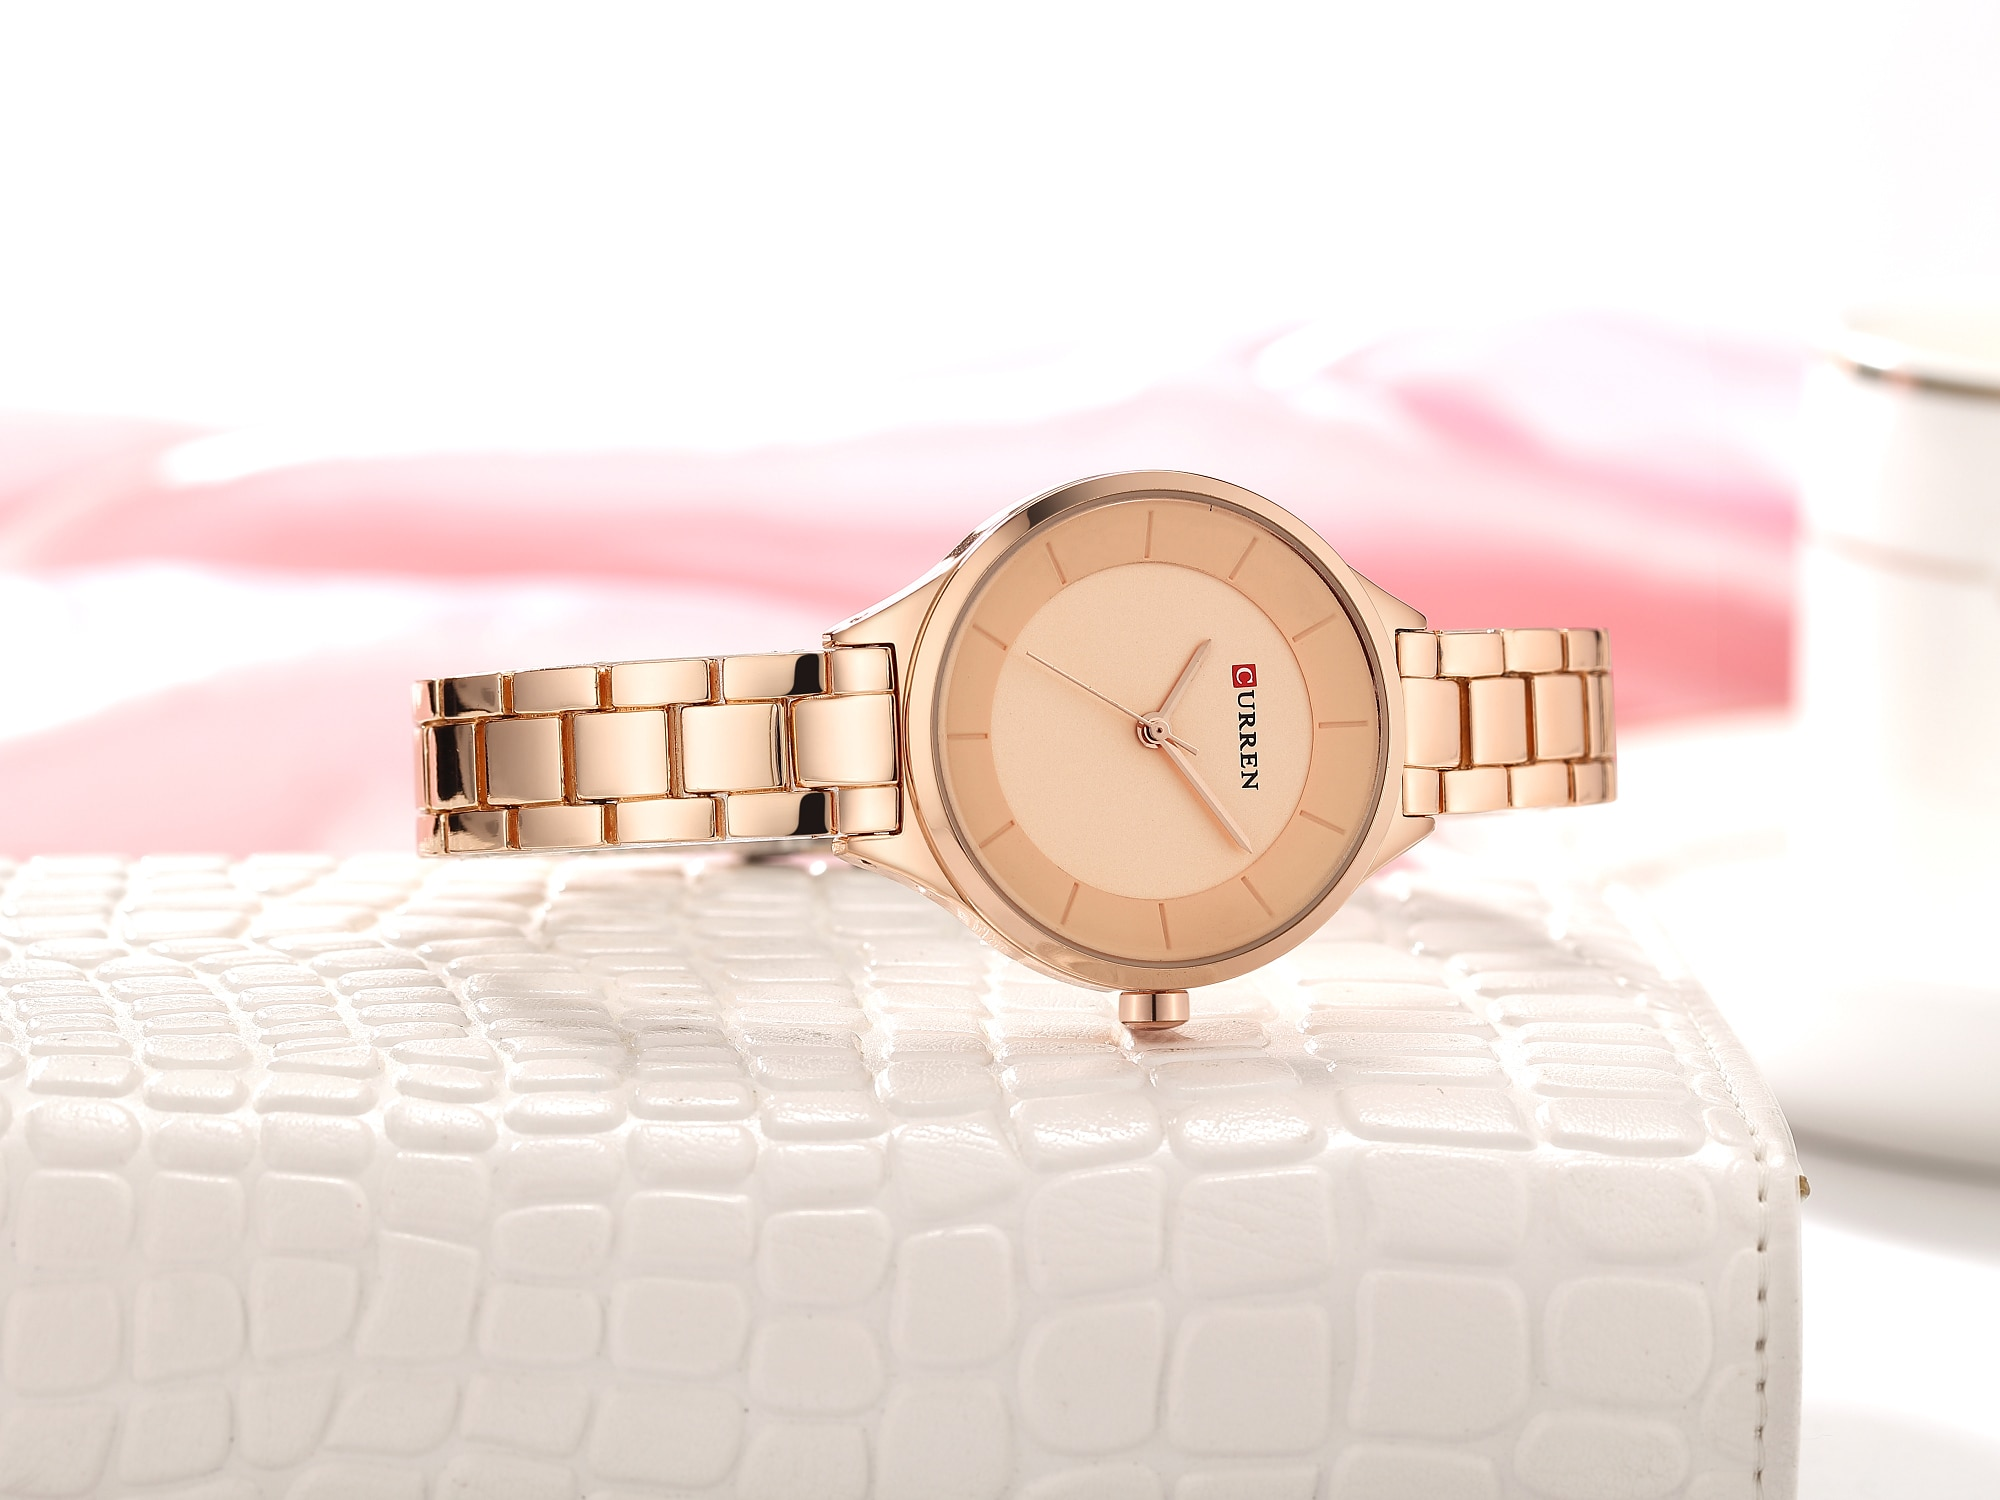 CURREN Top Brand Woman's Watch Creative Luxury Design Female Watches Stainless Steel Waterproof Casual Quartz Wristwatches Gifts enlarge